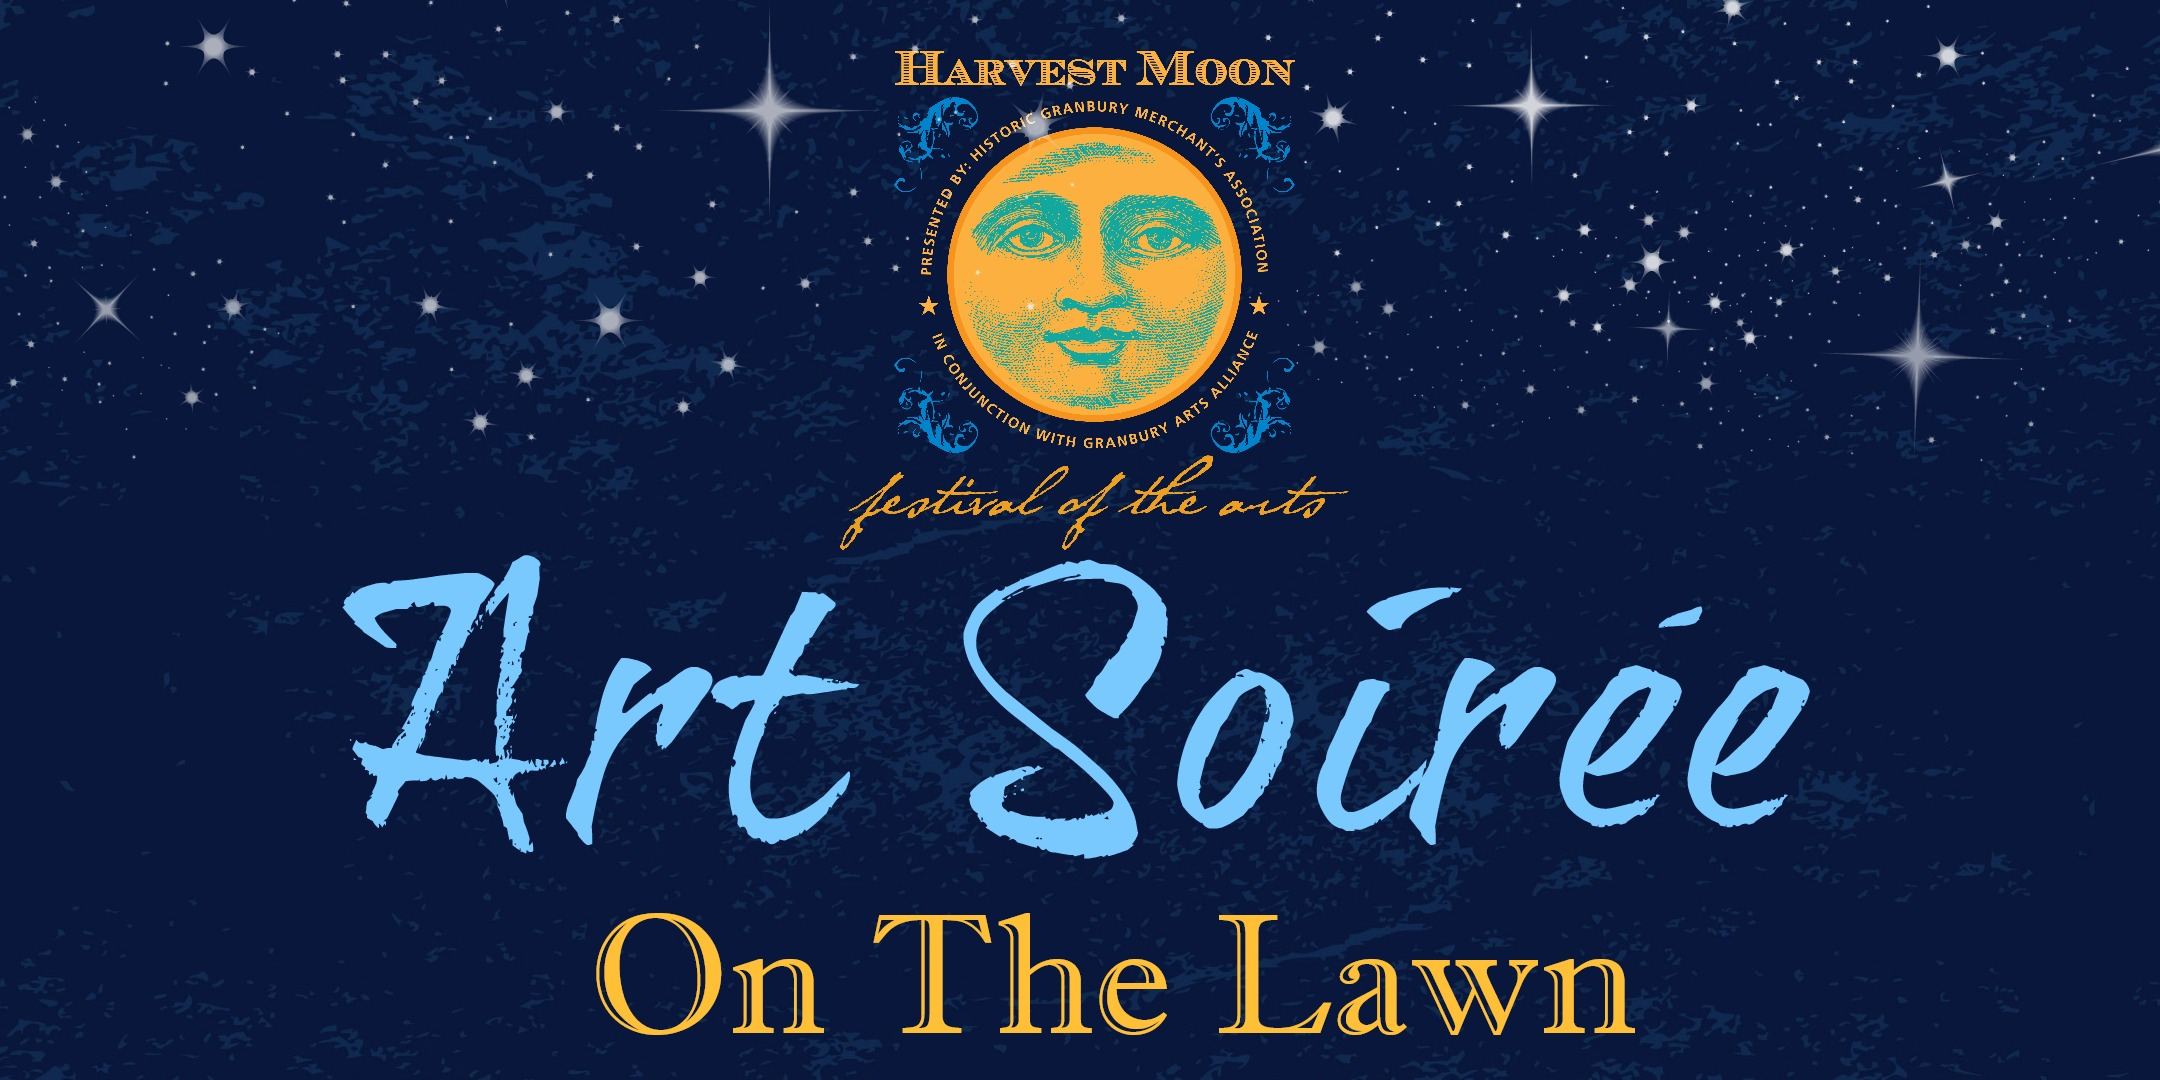 Harvest Moon Festival of the Arts Art Soiree.